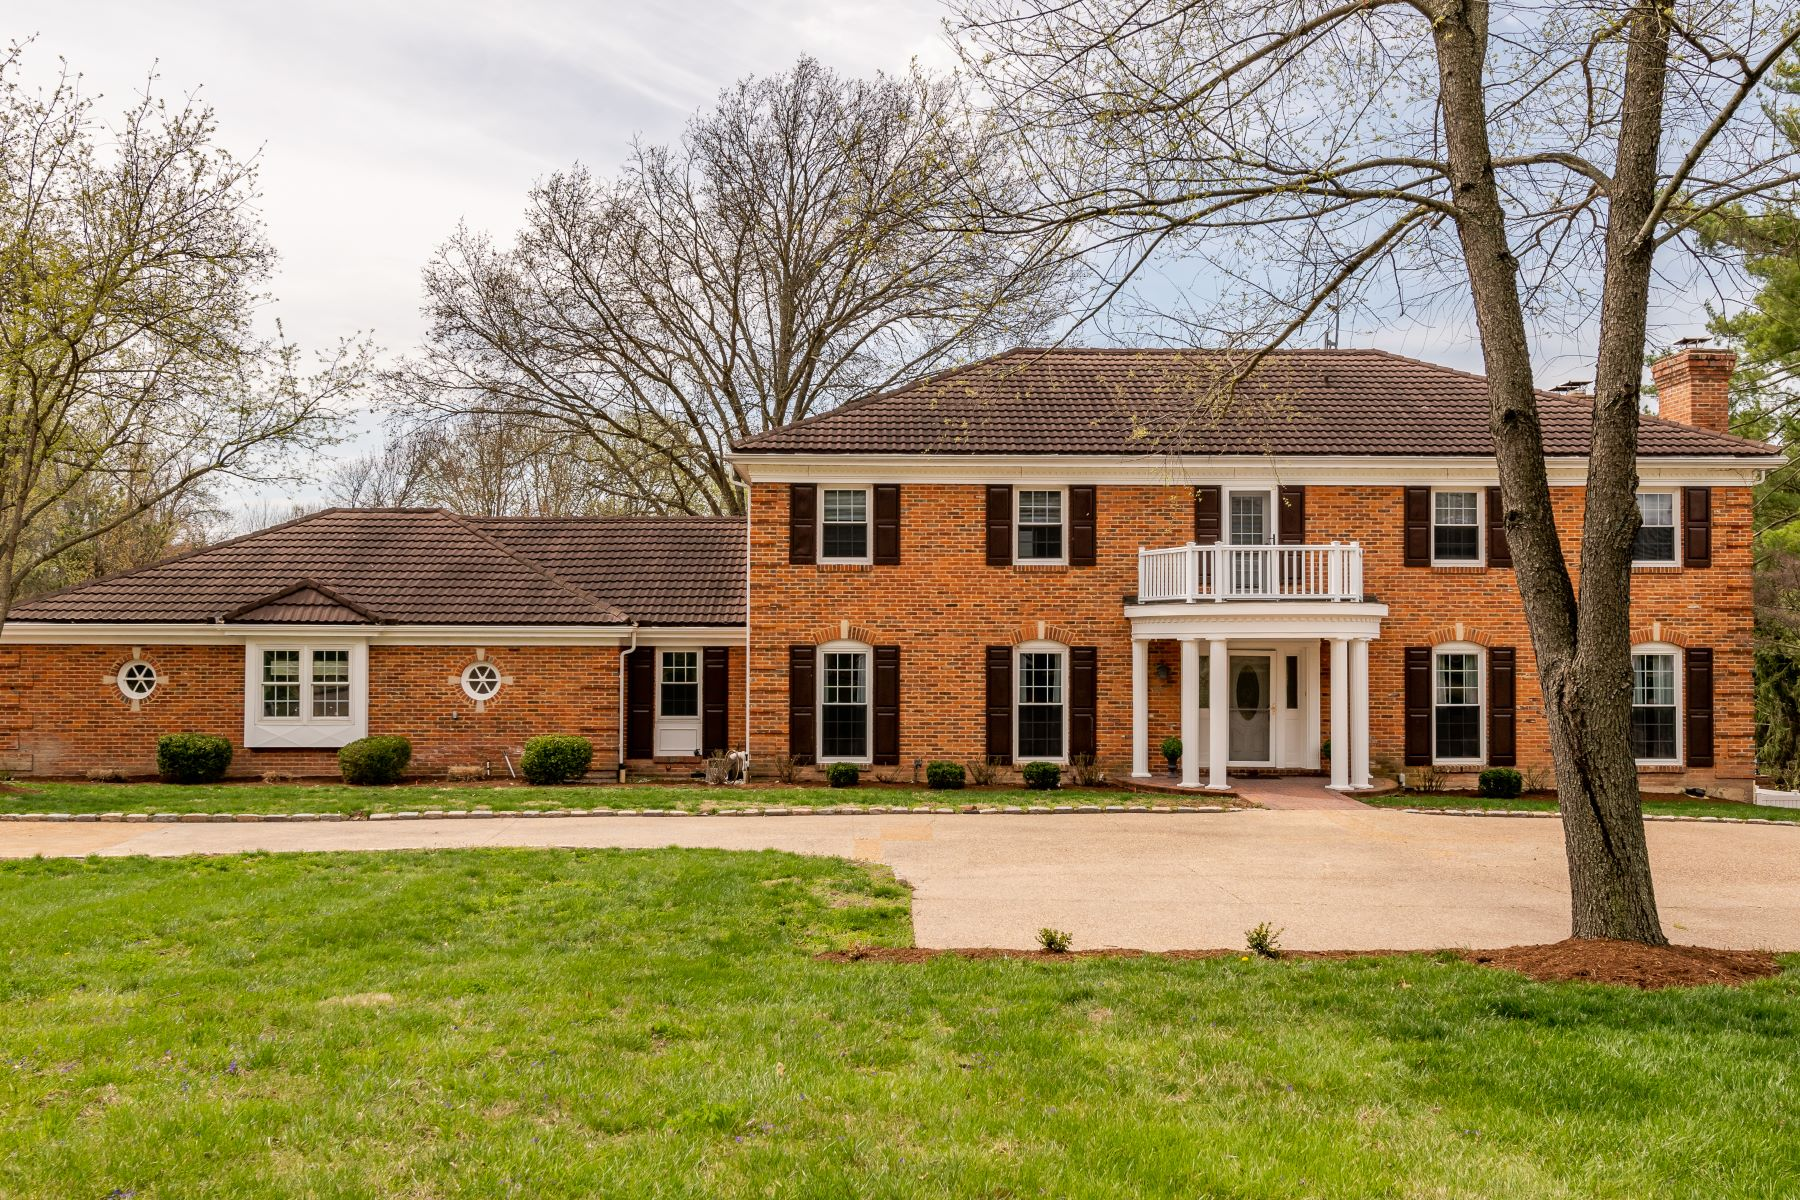 Single Family Home for Sale at Stately Home in Prestiguous Muirfield 22 Muirfield Lane Town And Country, Missouri 63141 United States